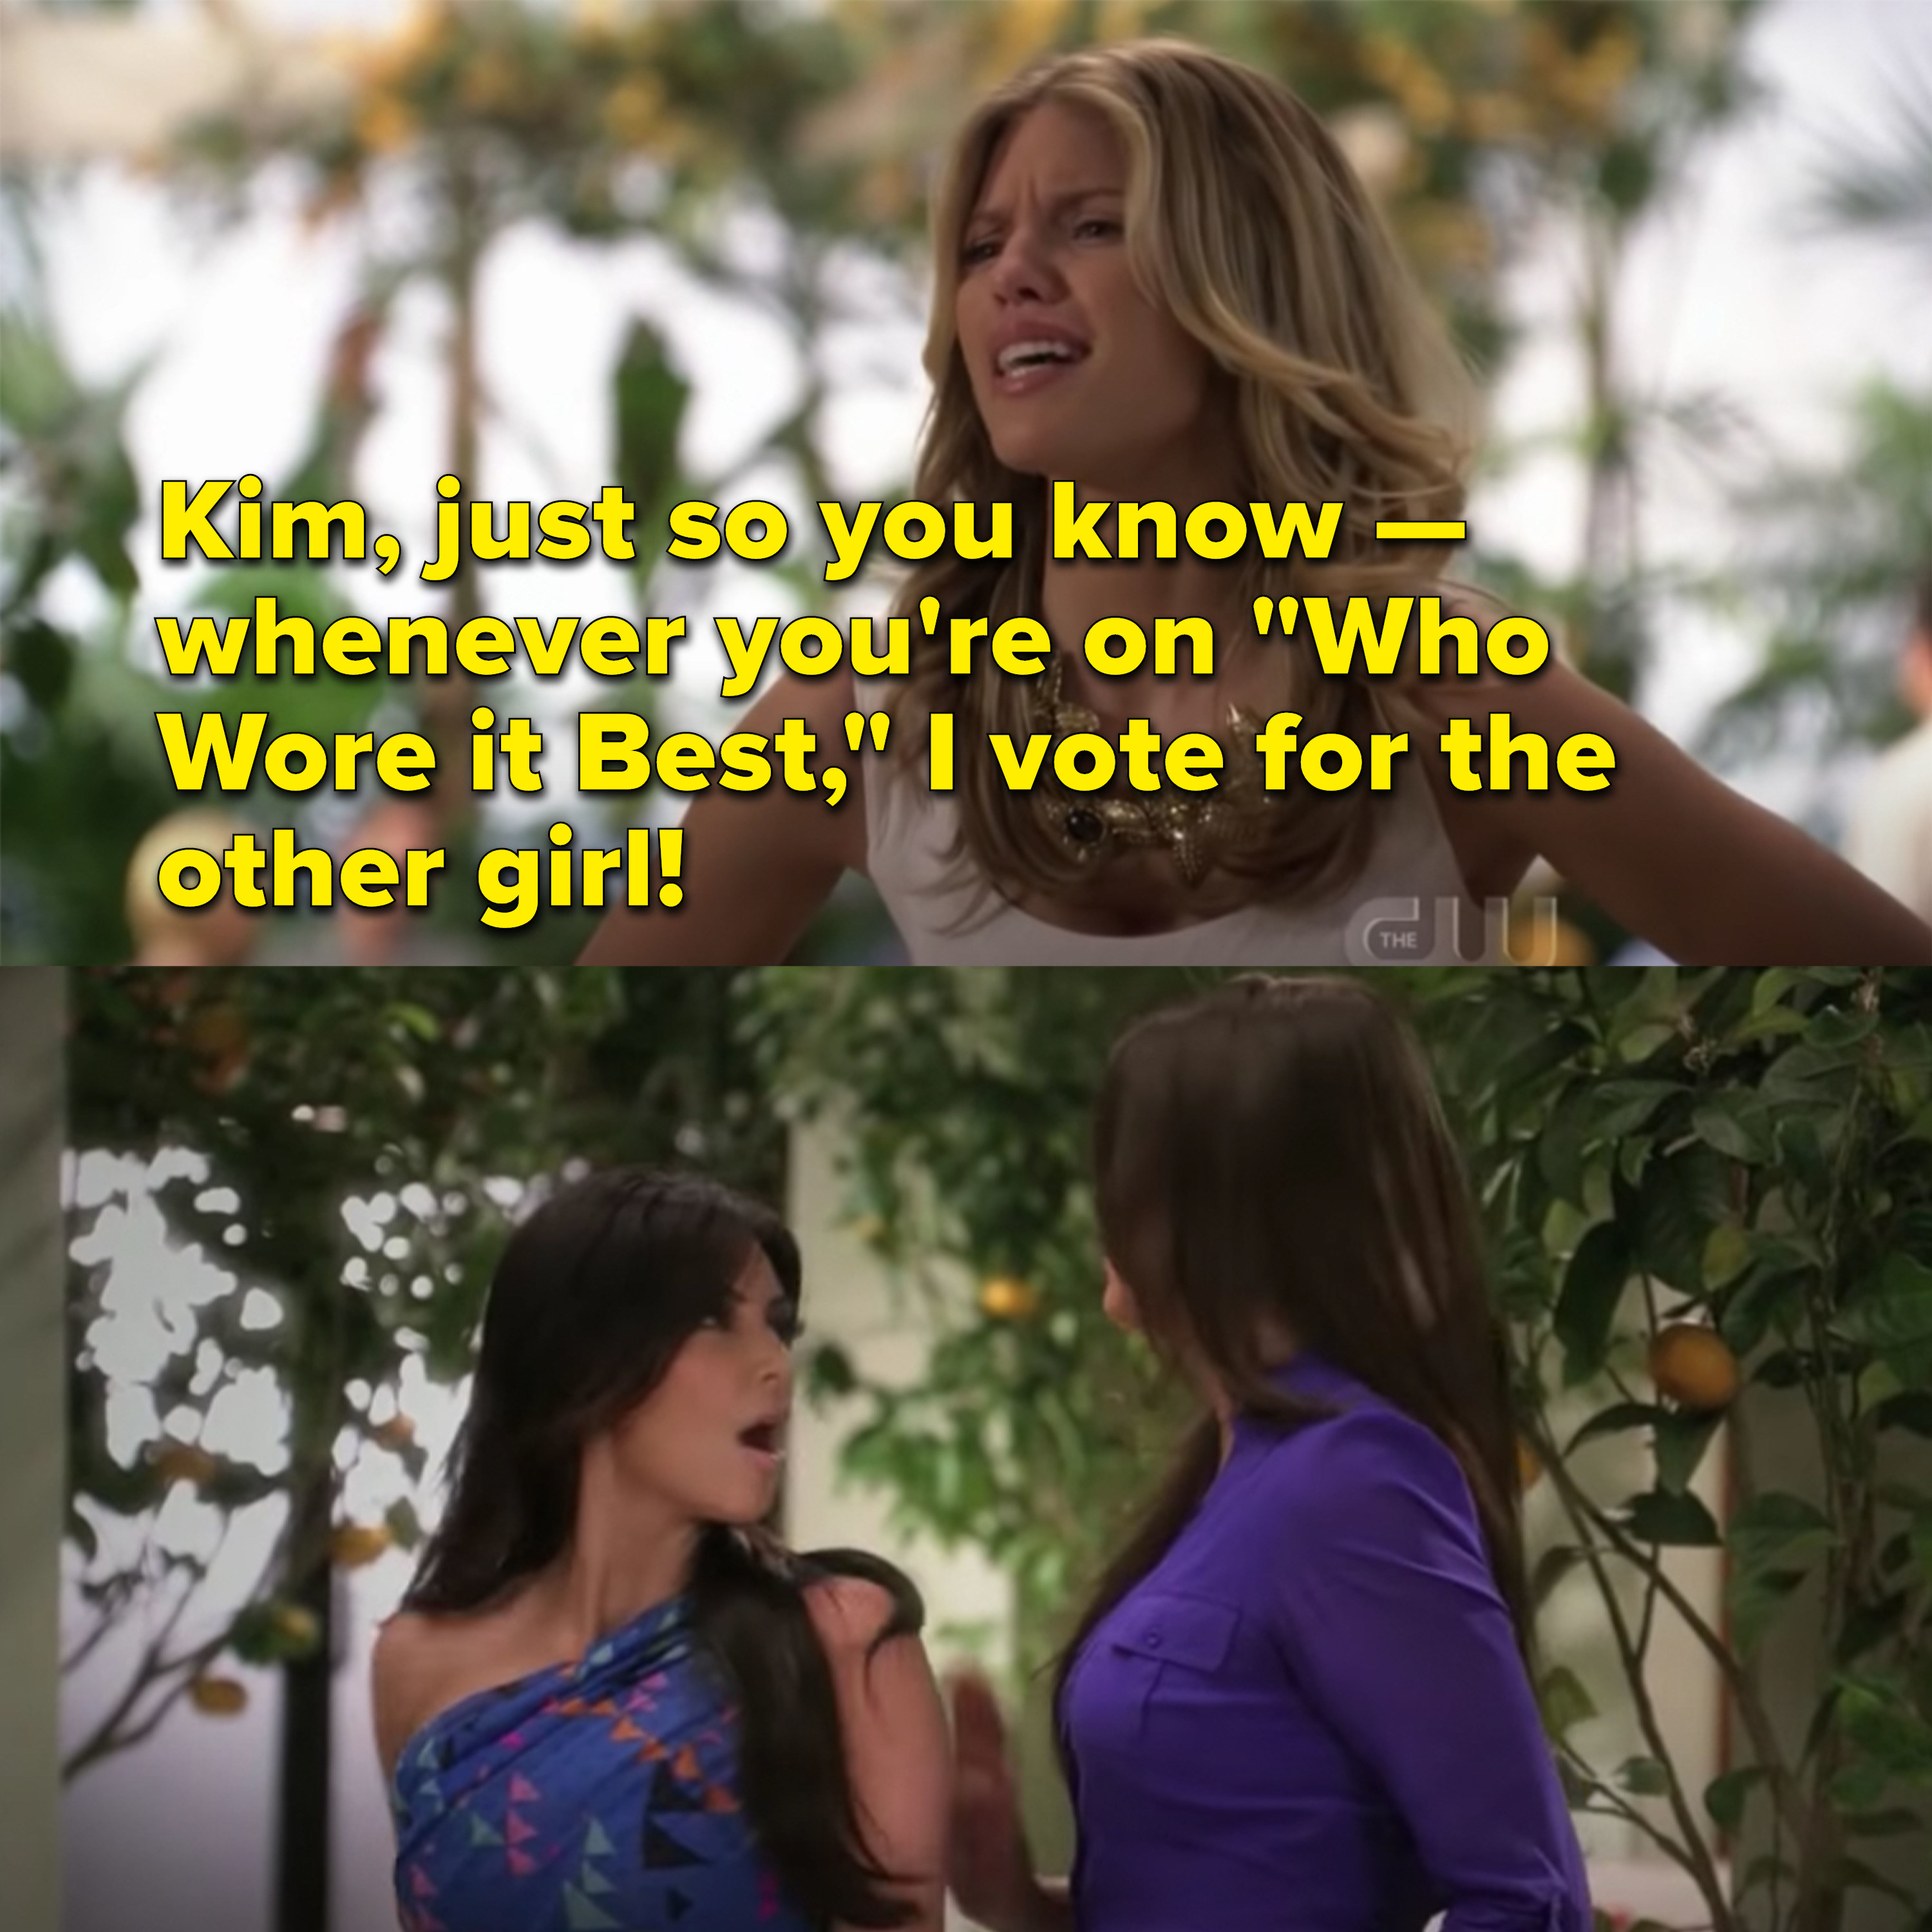 """Naomi tells Kim that whenever she's on """"Who Wore It Best"""" she votes for the other girl"""